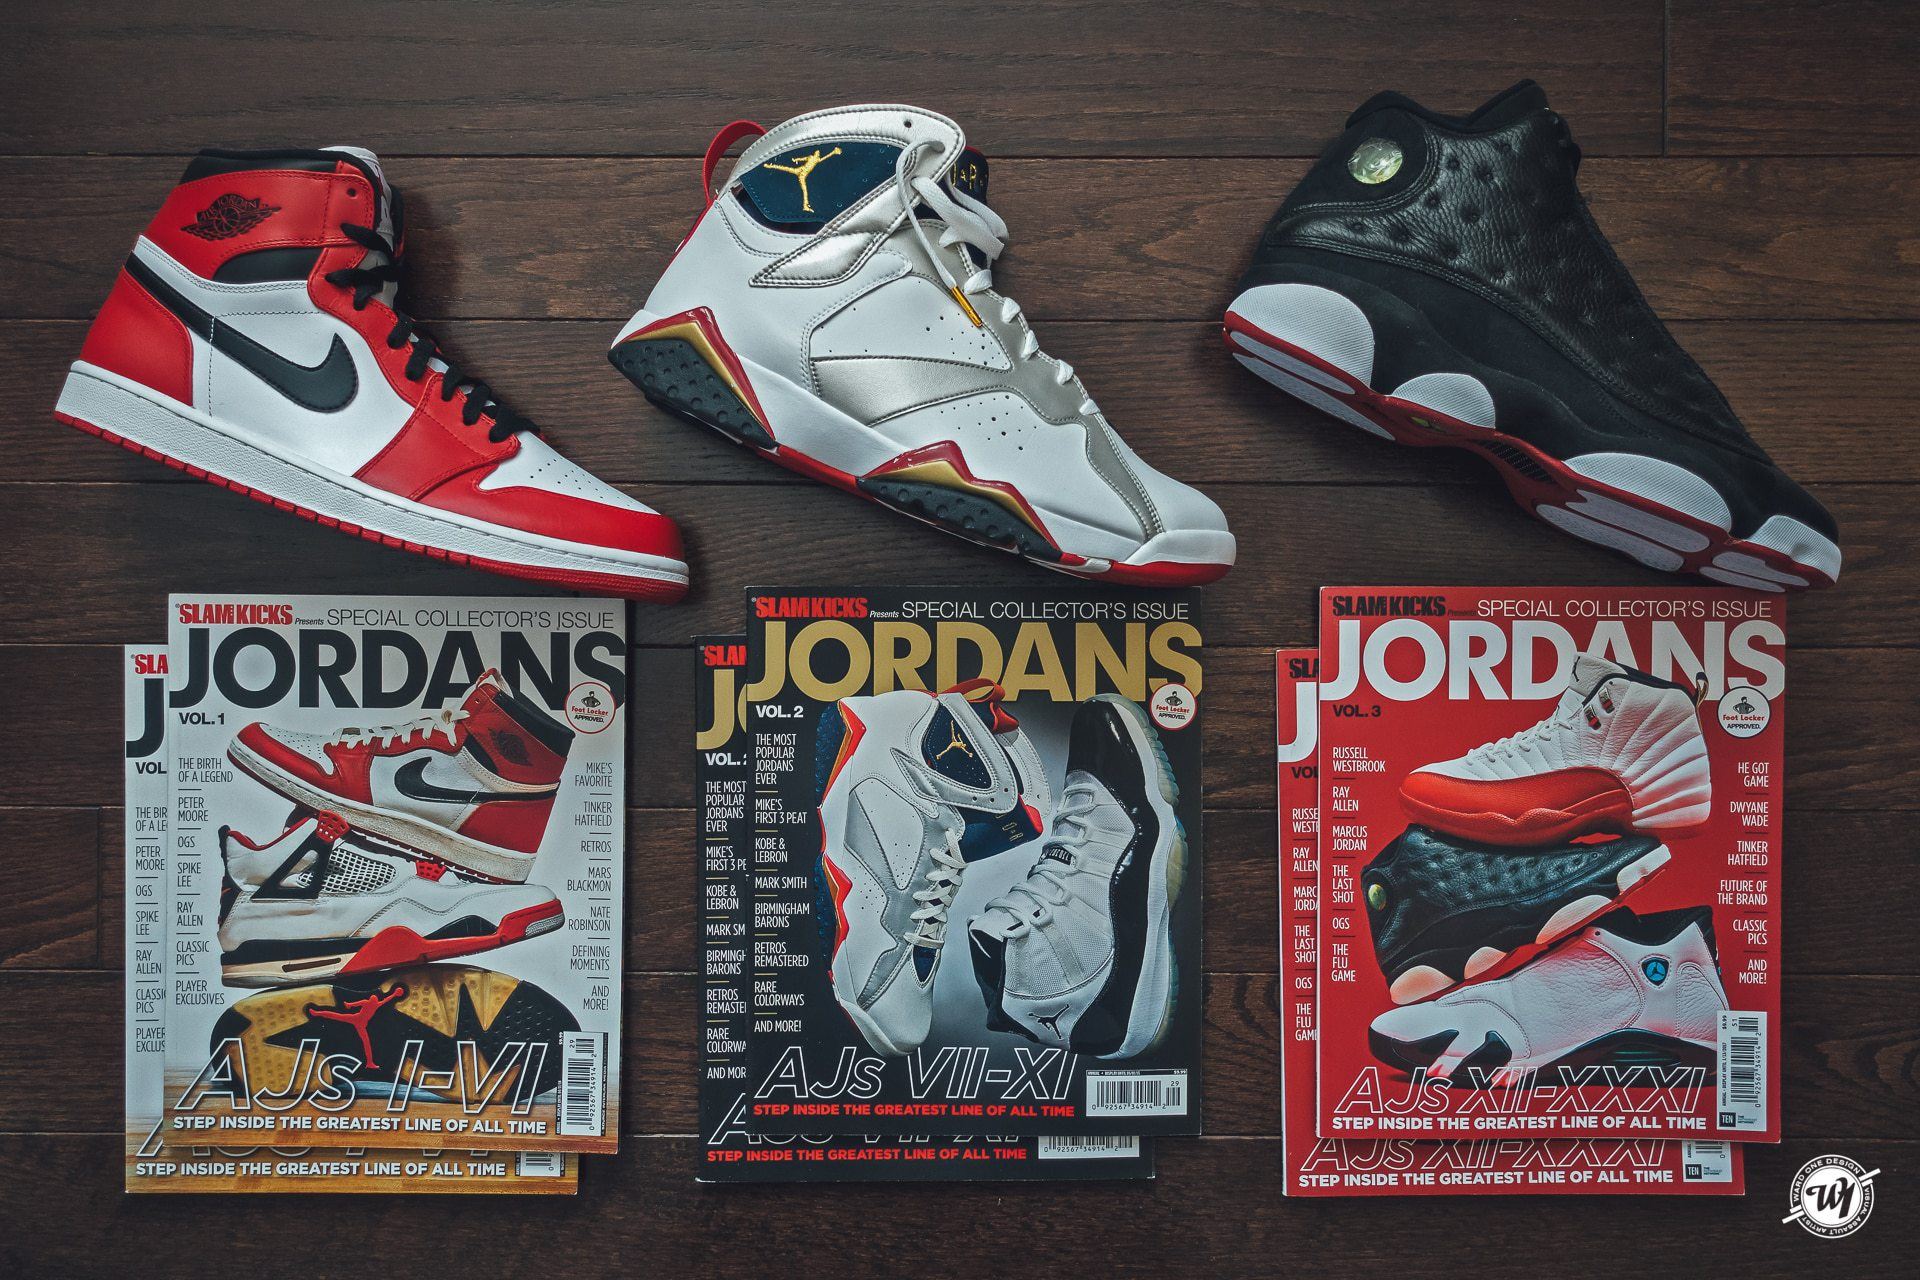 Slam Magazine • Jordans • The Greatest Line of All Time photography Ward 1 Shoes